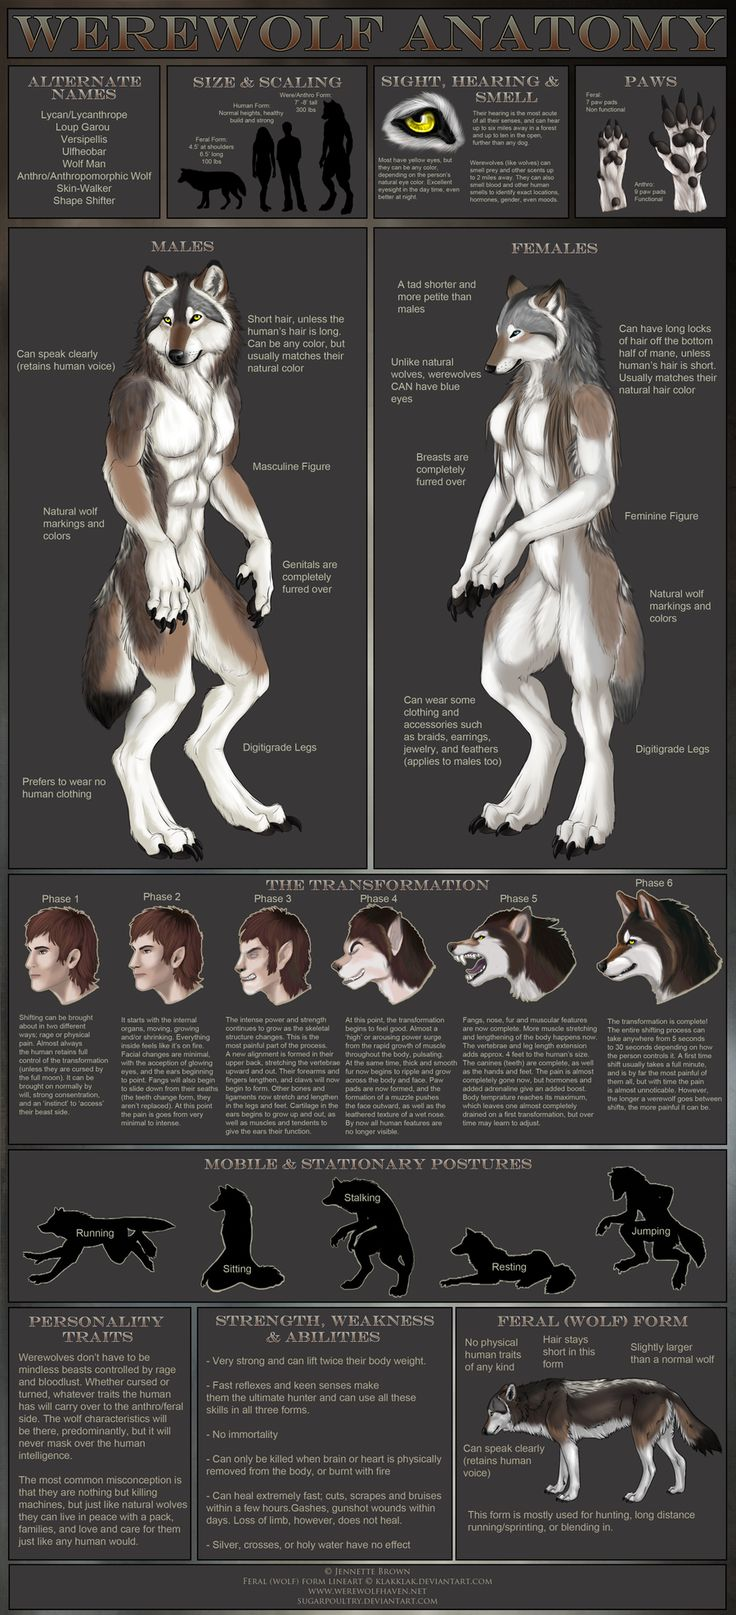 Werewolf Anatomy by =sugarpoultry on deviantART. Might use some of these as inspo for mine